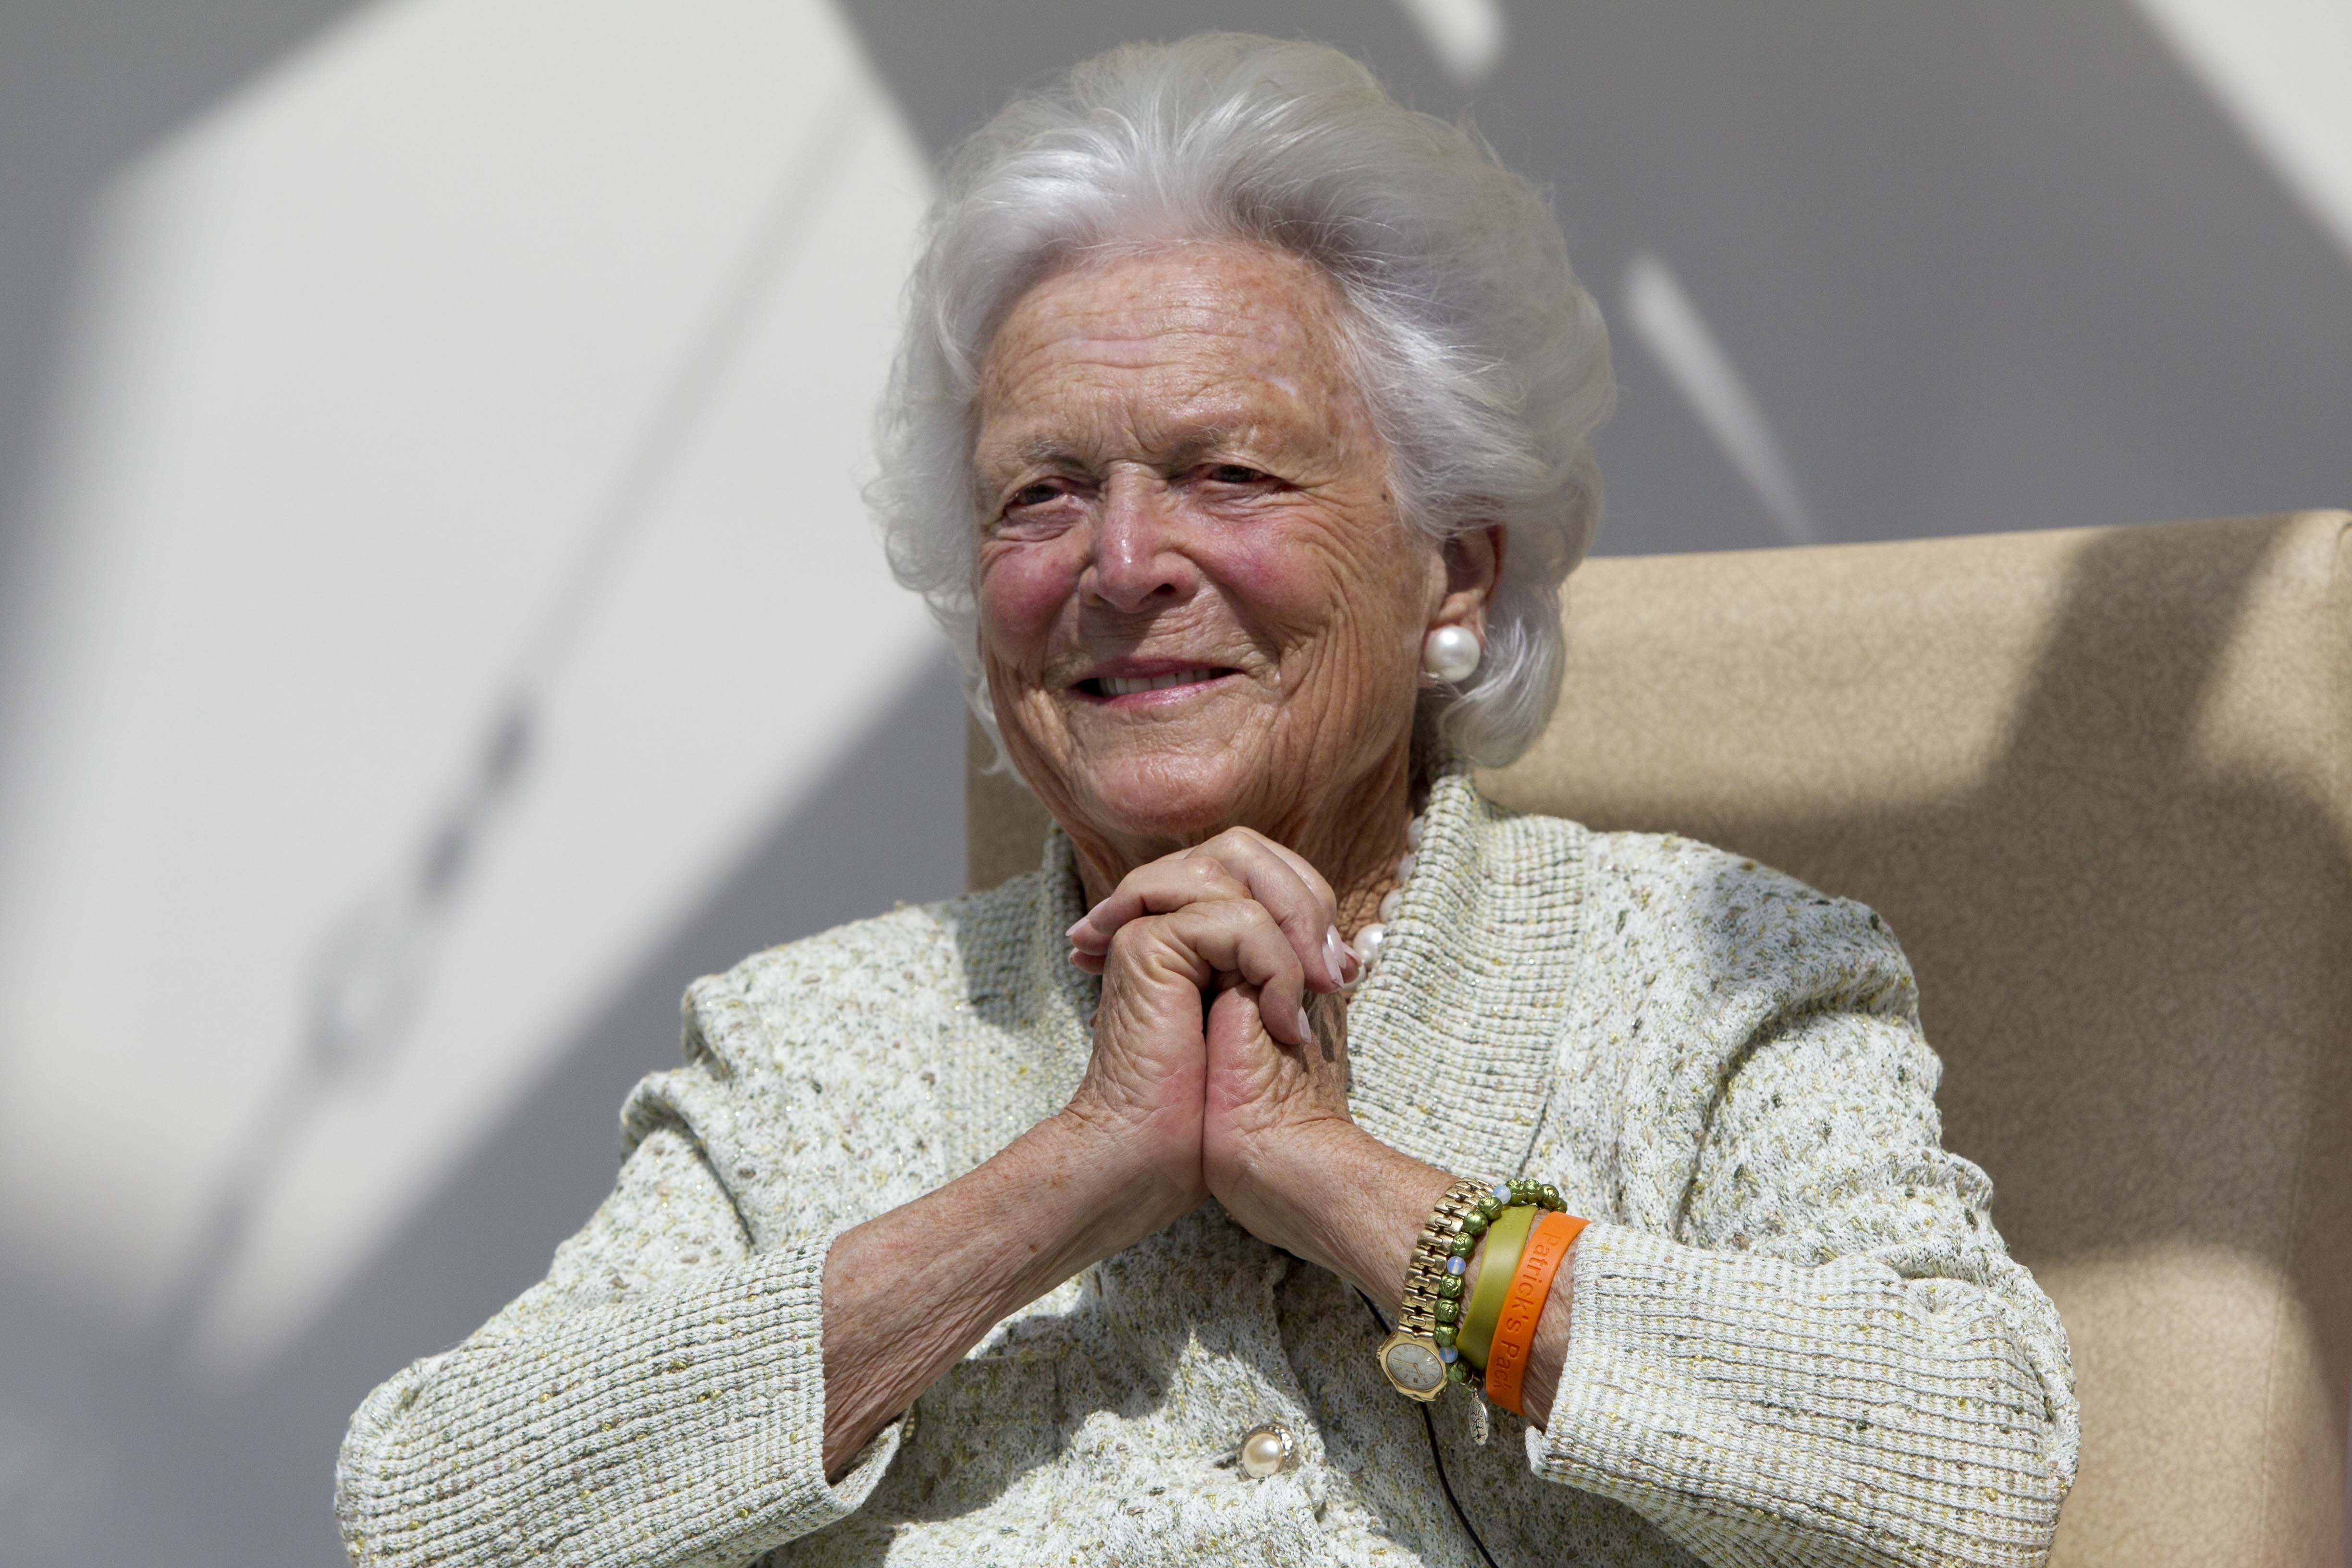 Barbara Bush, shown here on Aug. 22, 2013. The former first lady passed away on April 18, 2018.